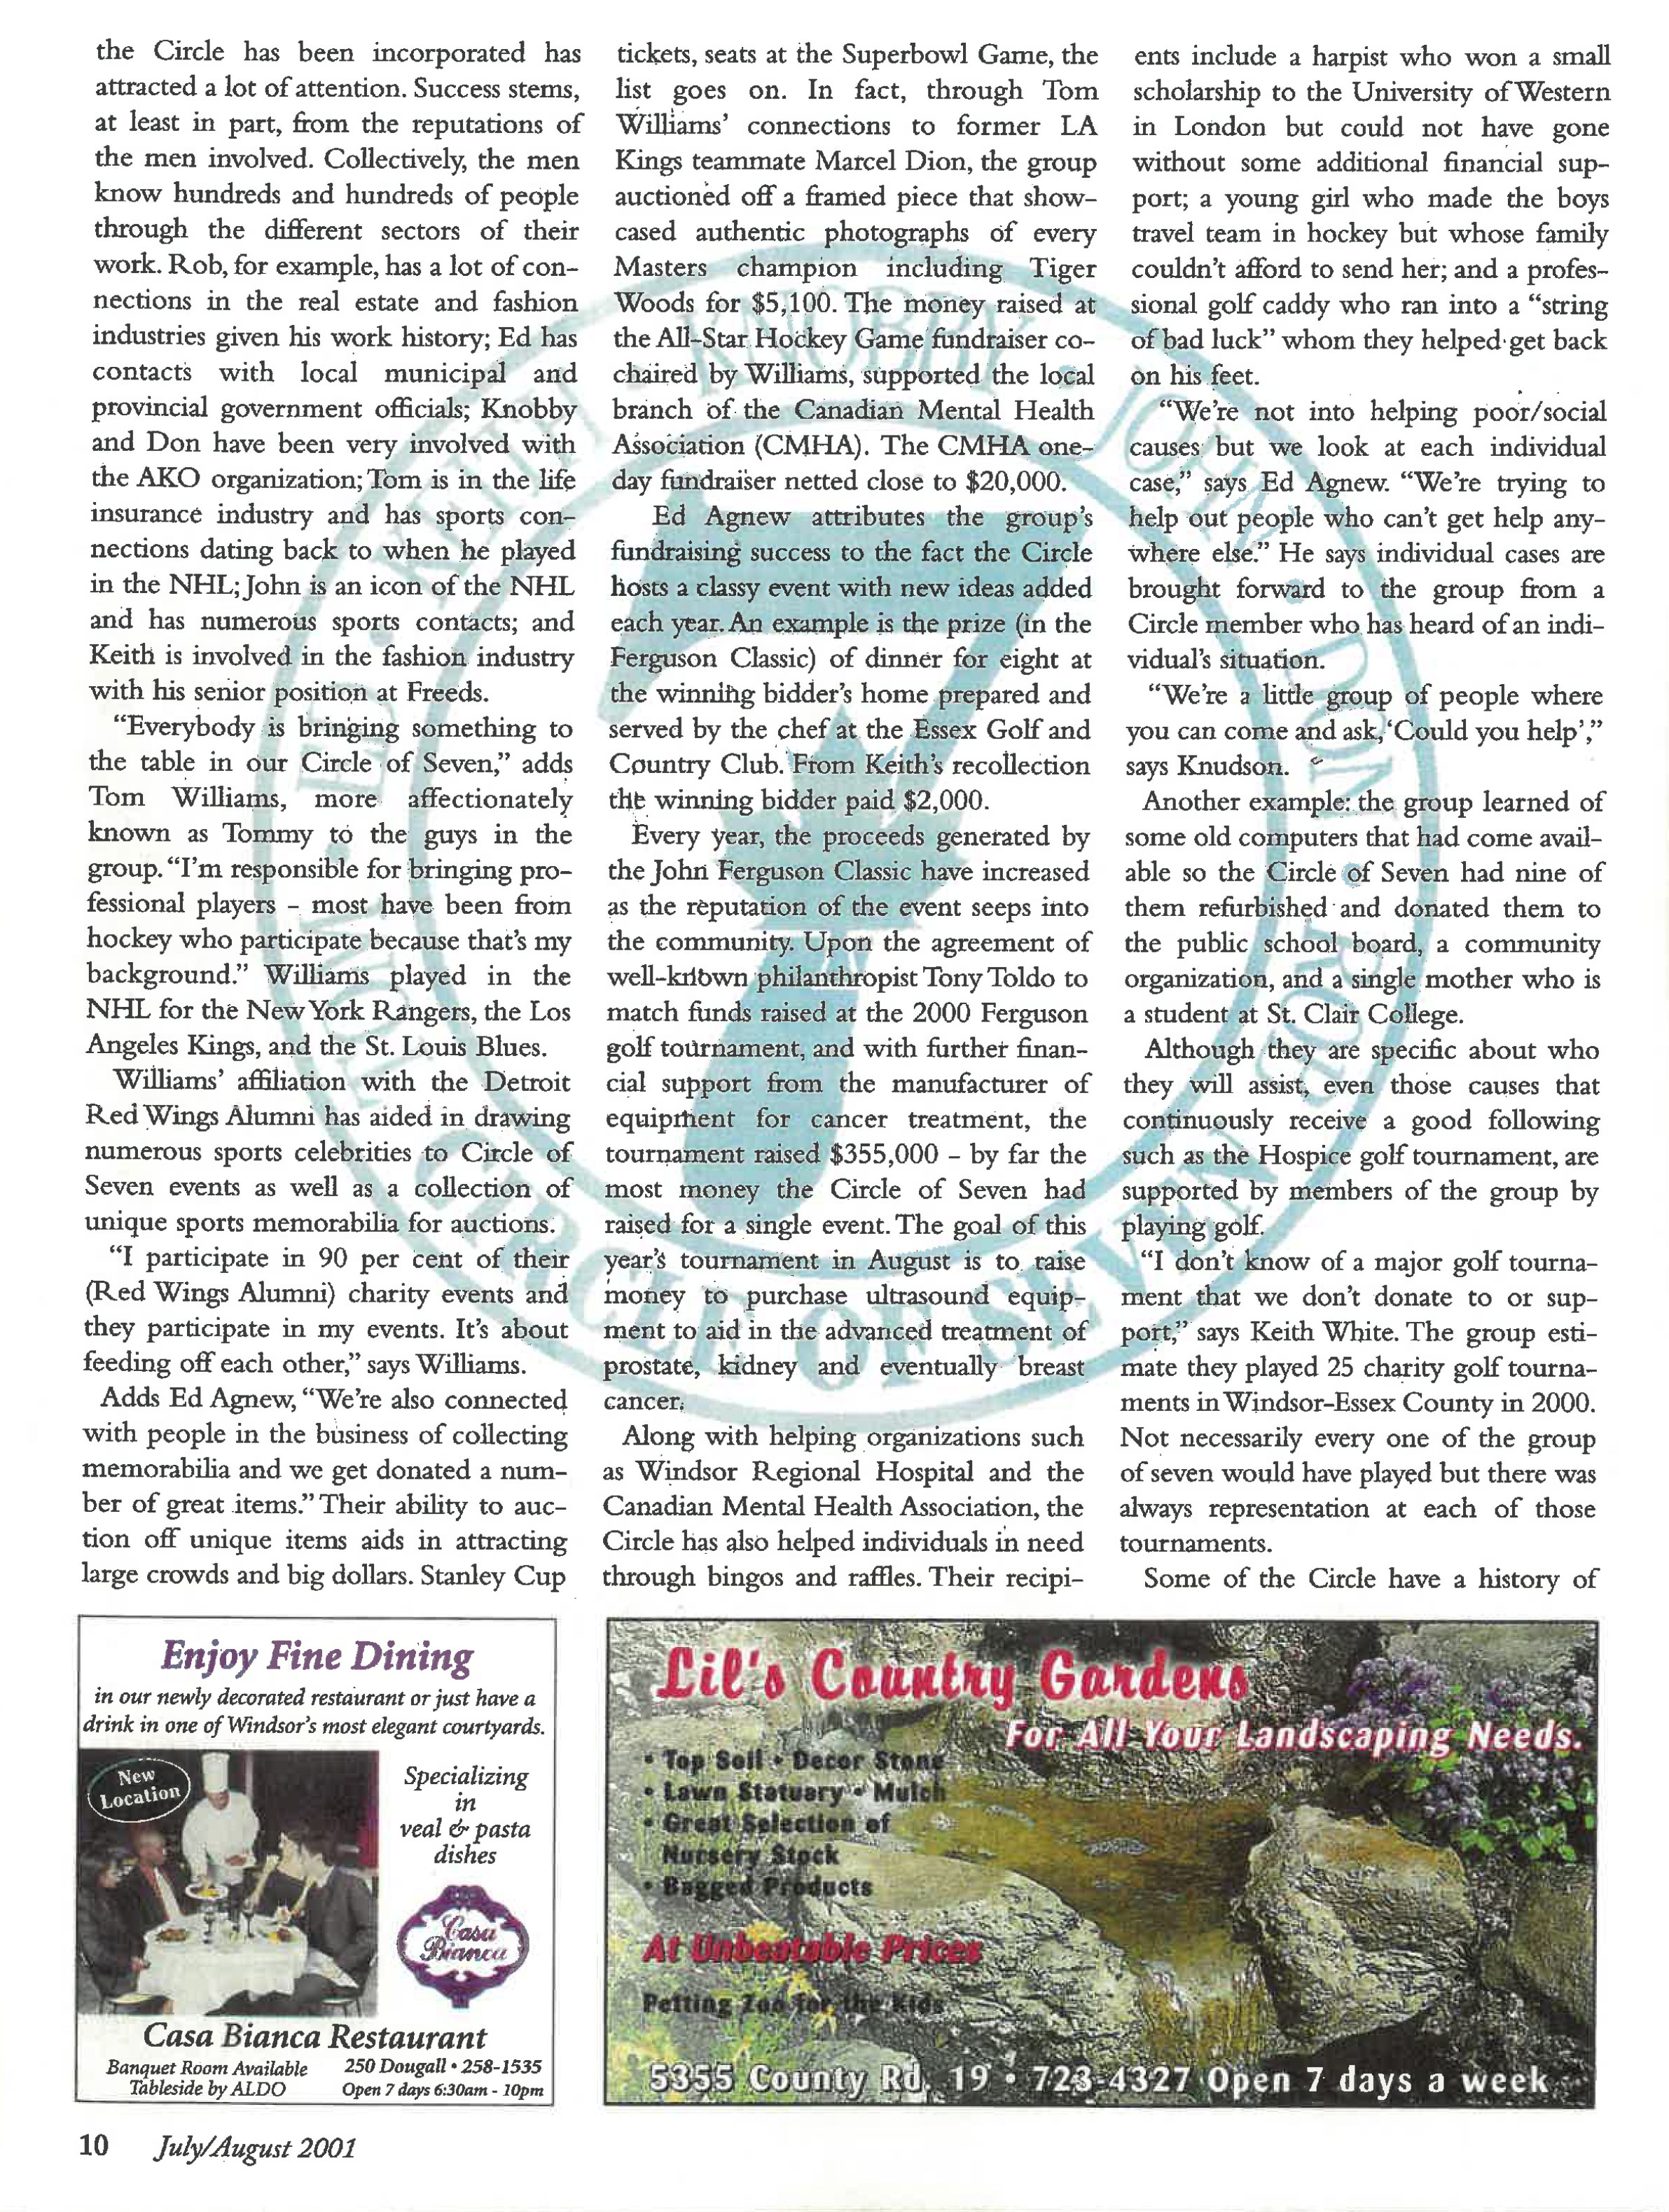 The magic of Seven Article page 3